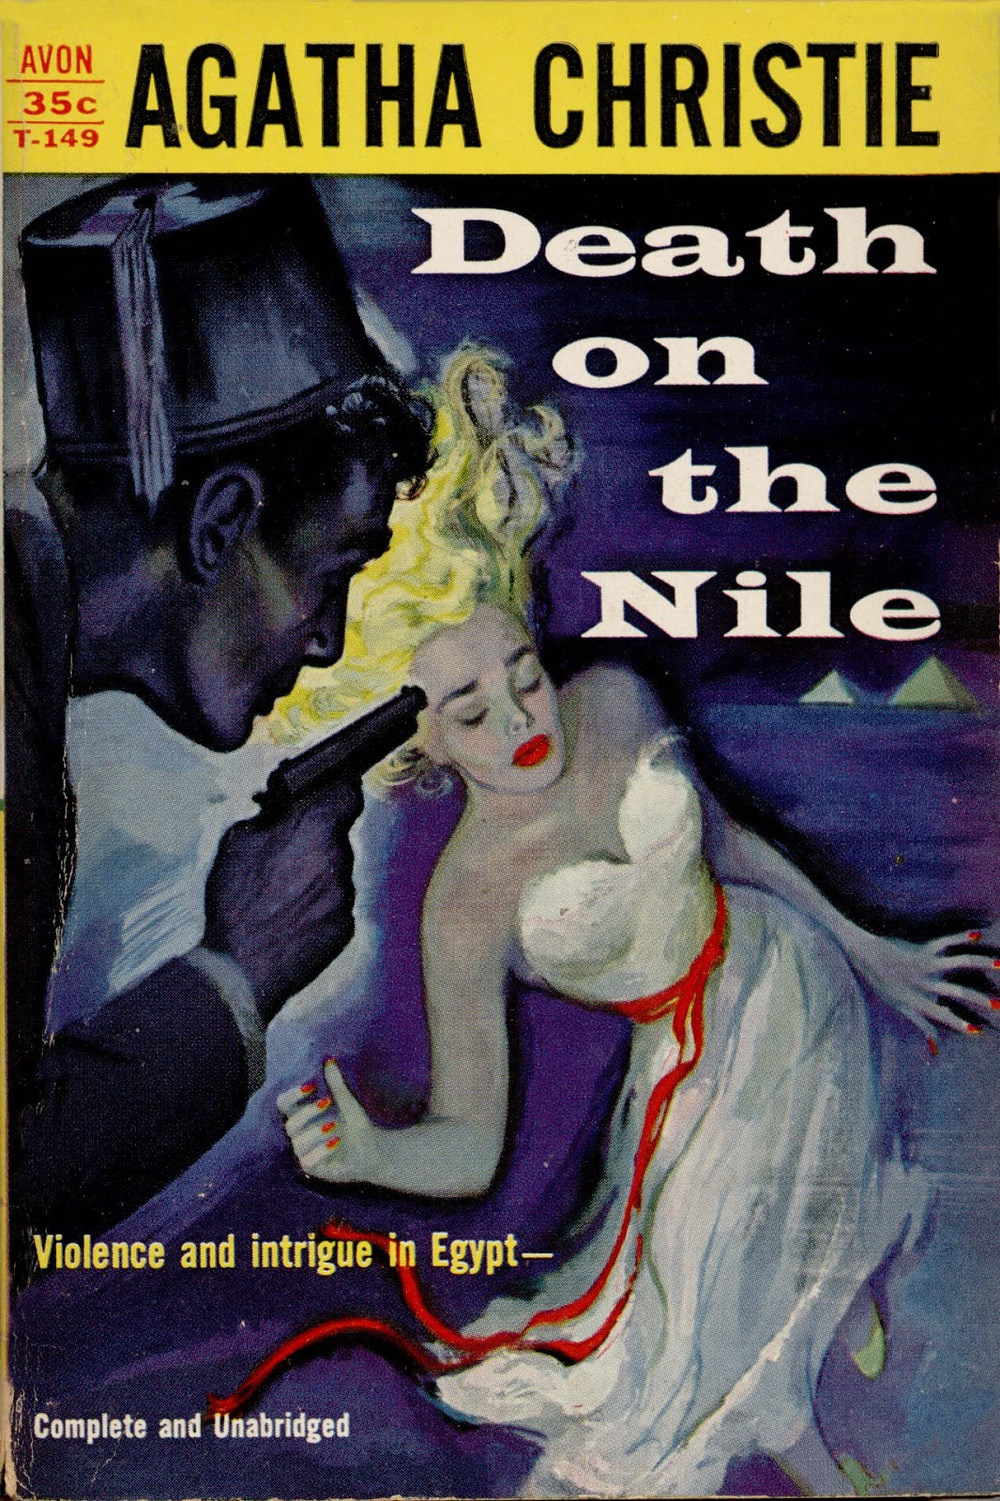 Death on the Nile by Agatha Christie (via Pulp Covers)